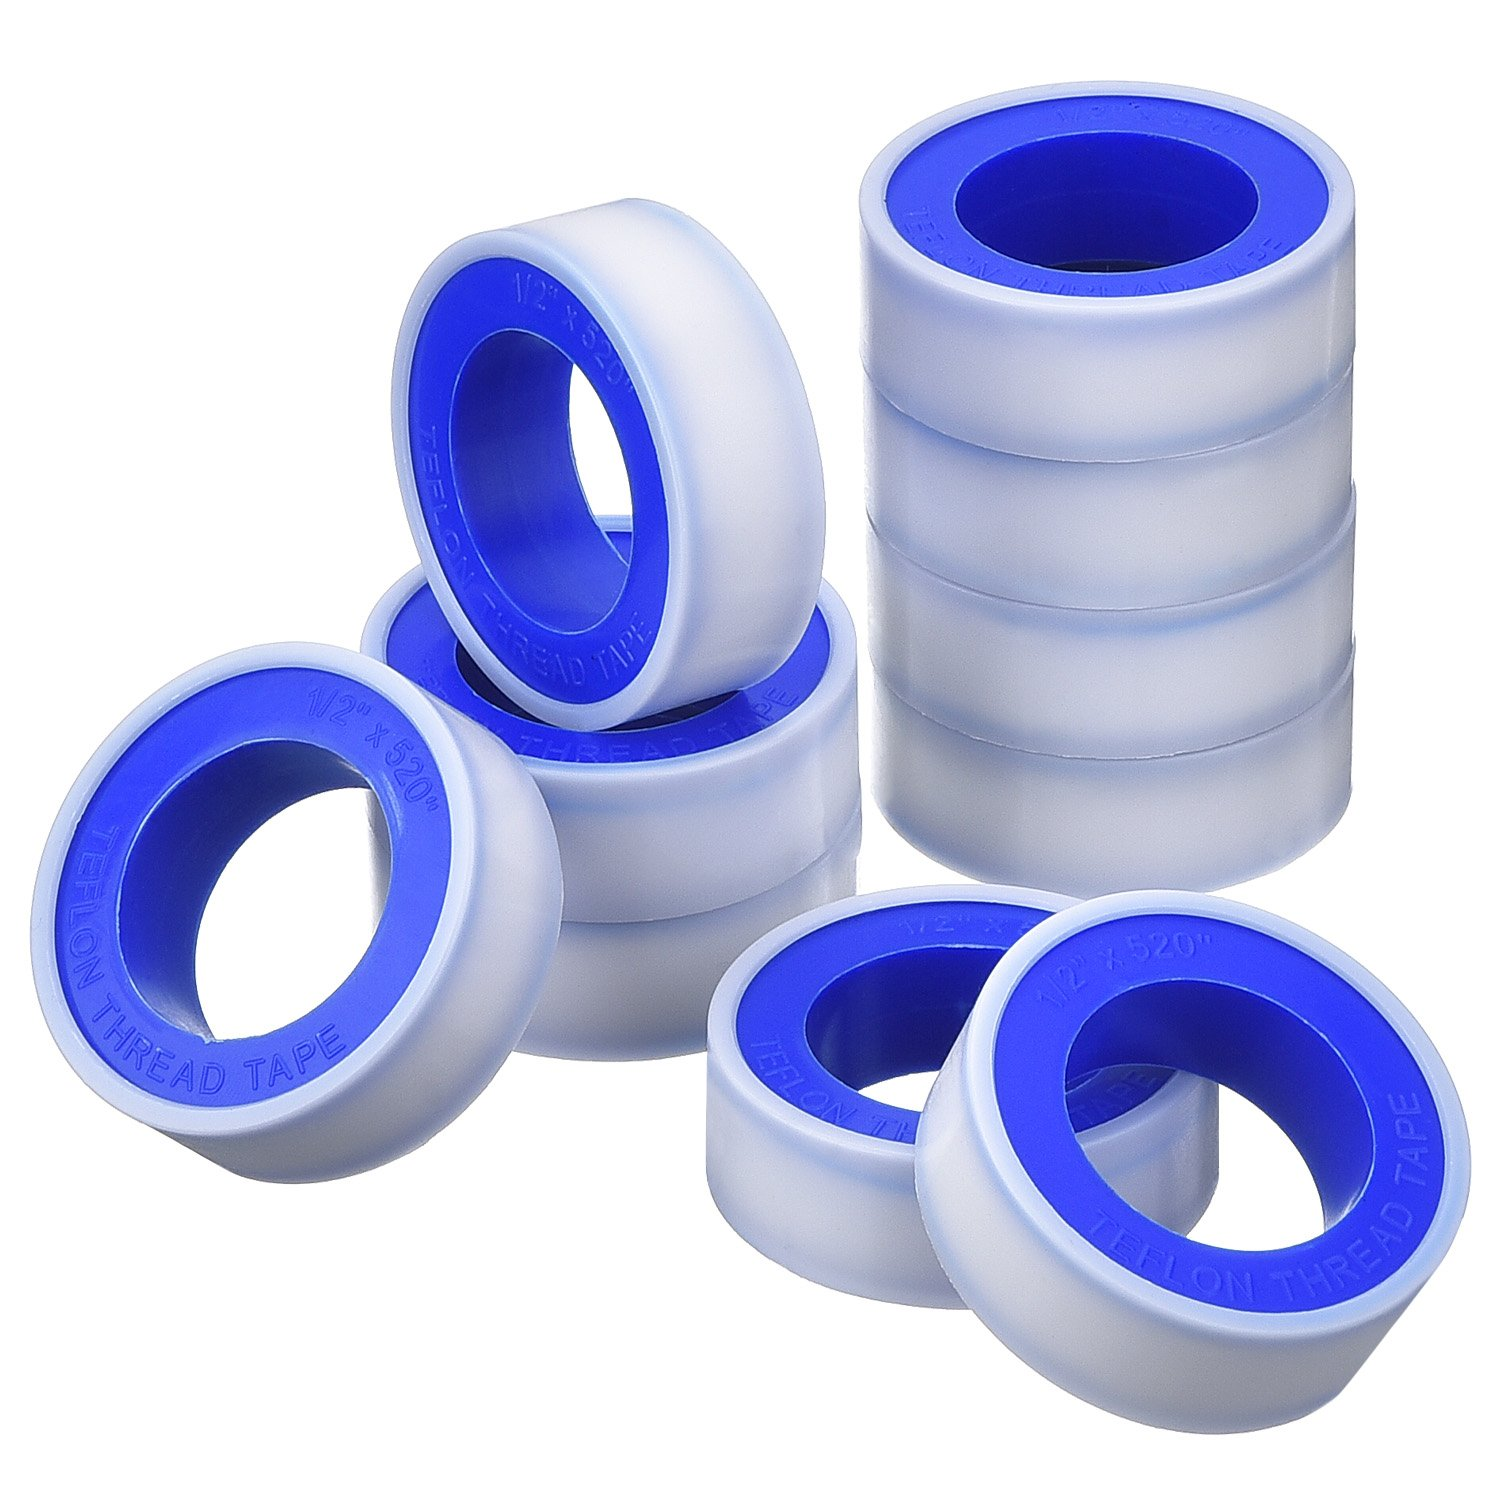 10 Pack Thread Tape PTFE Thread Seal Tape Pipe Sealant Tape for Plumbers Plumbing, 1/ 2 Inch Mudder